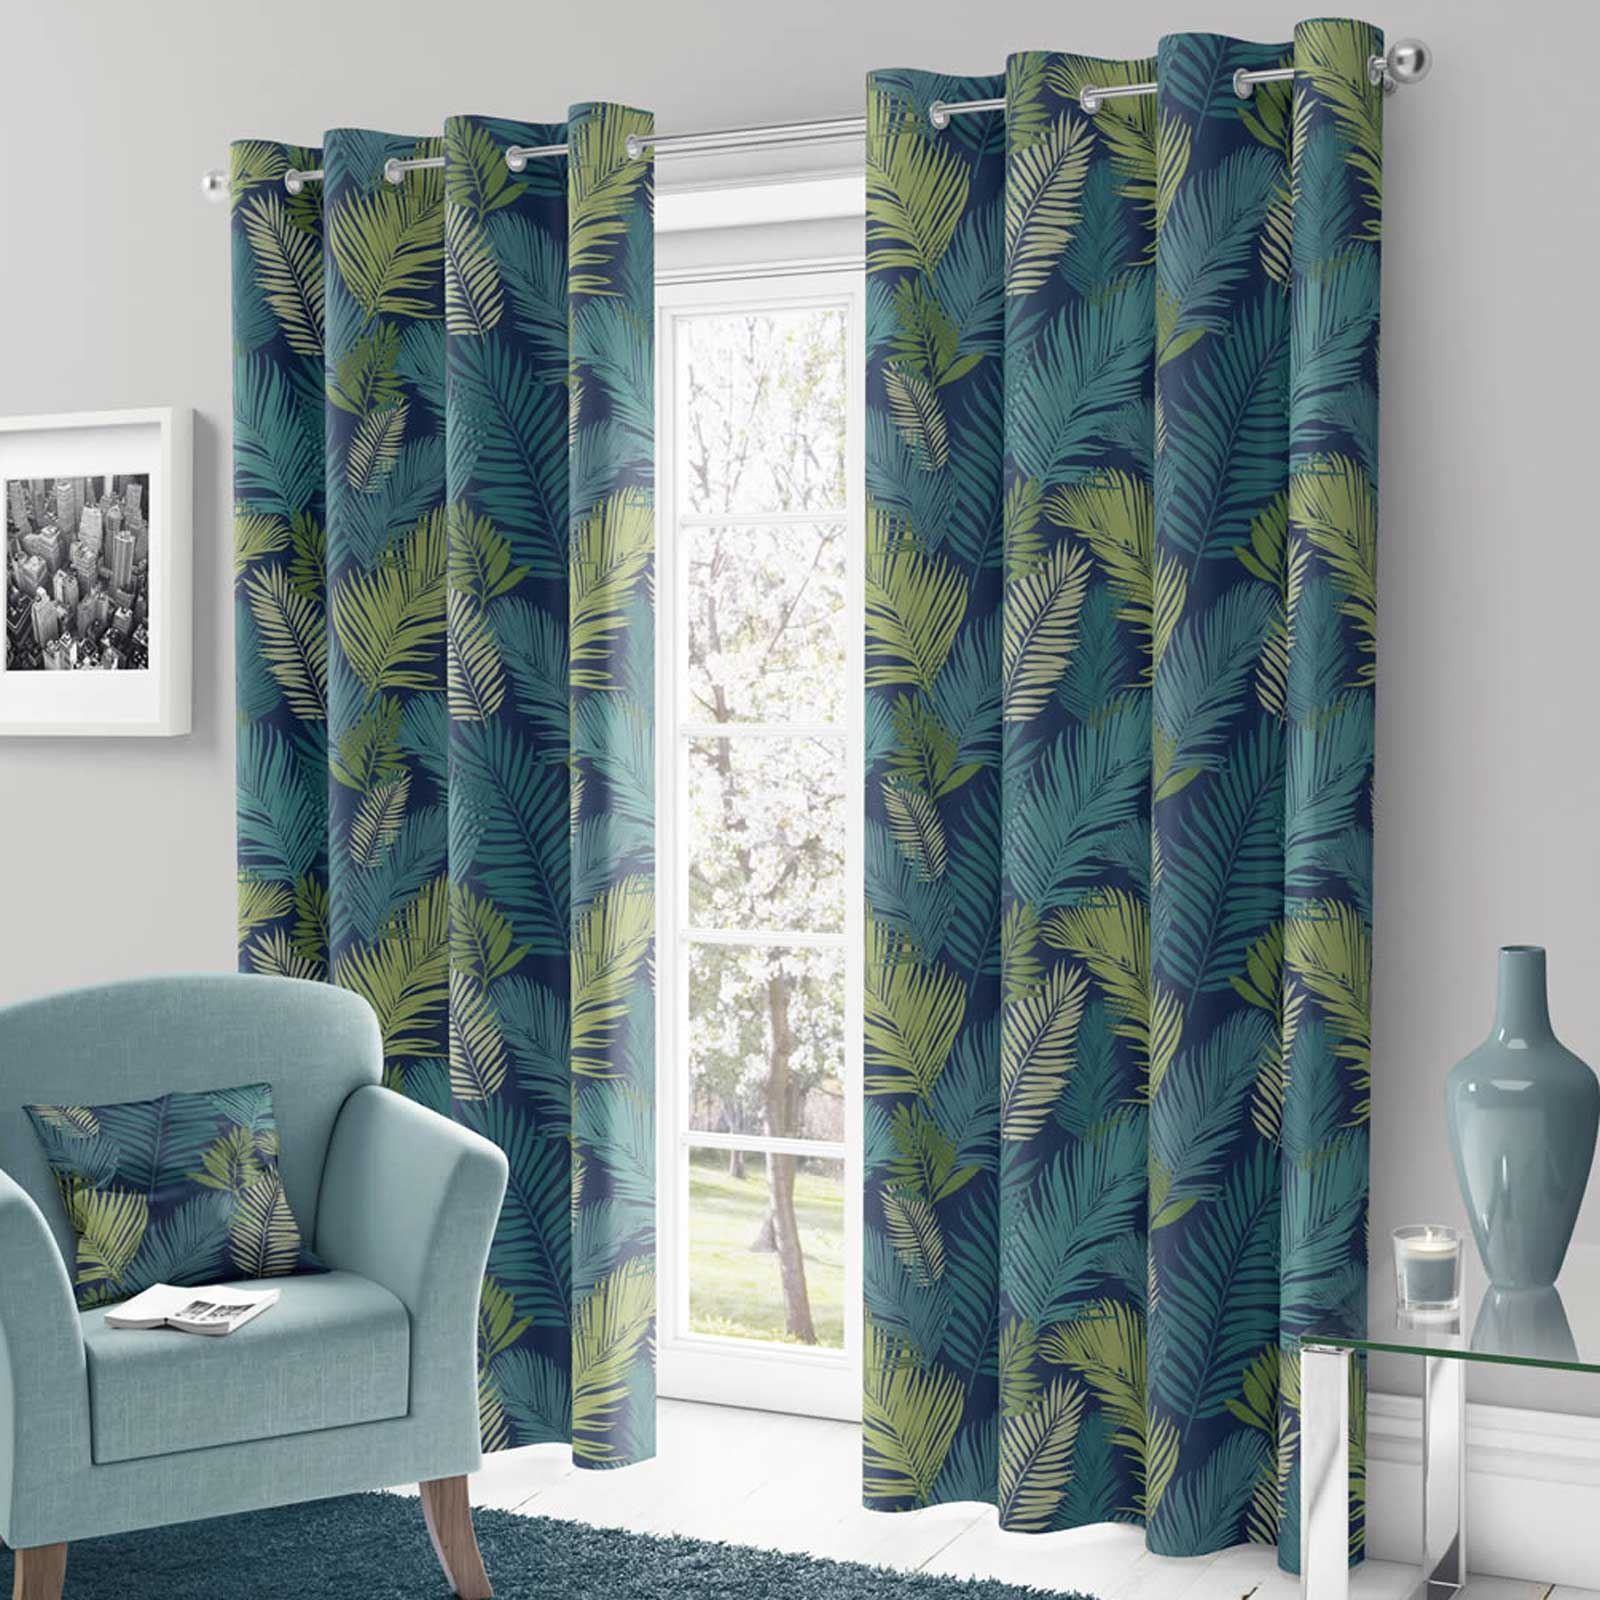 Teal Eyelet Curtains Green Tropical Palm Ready Made Lined